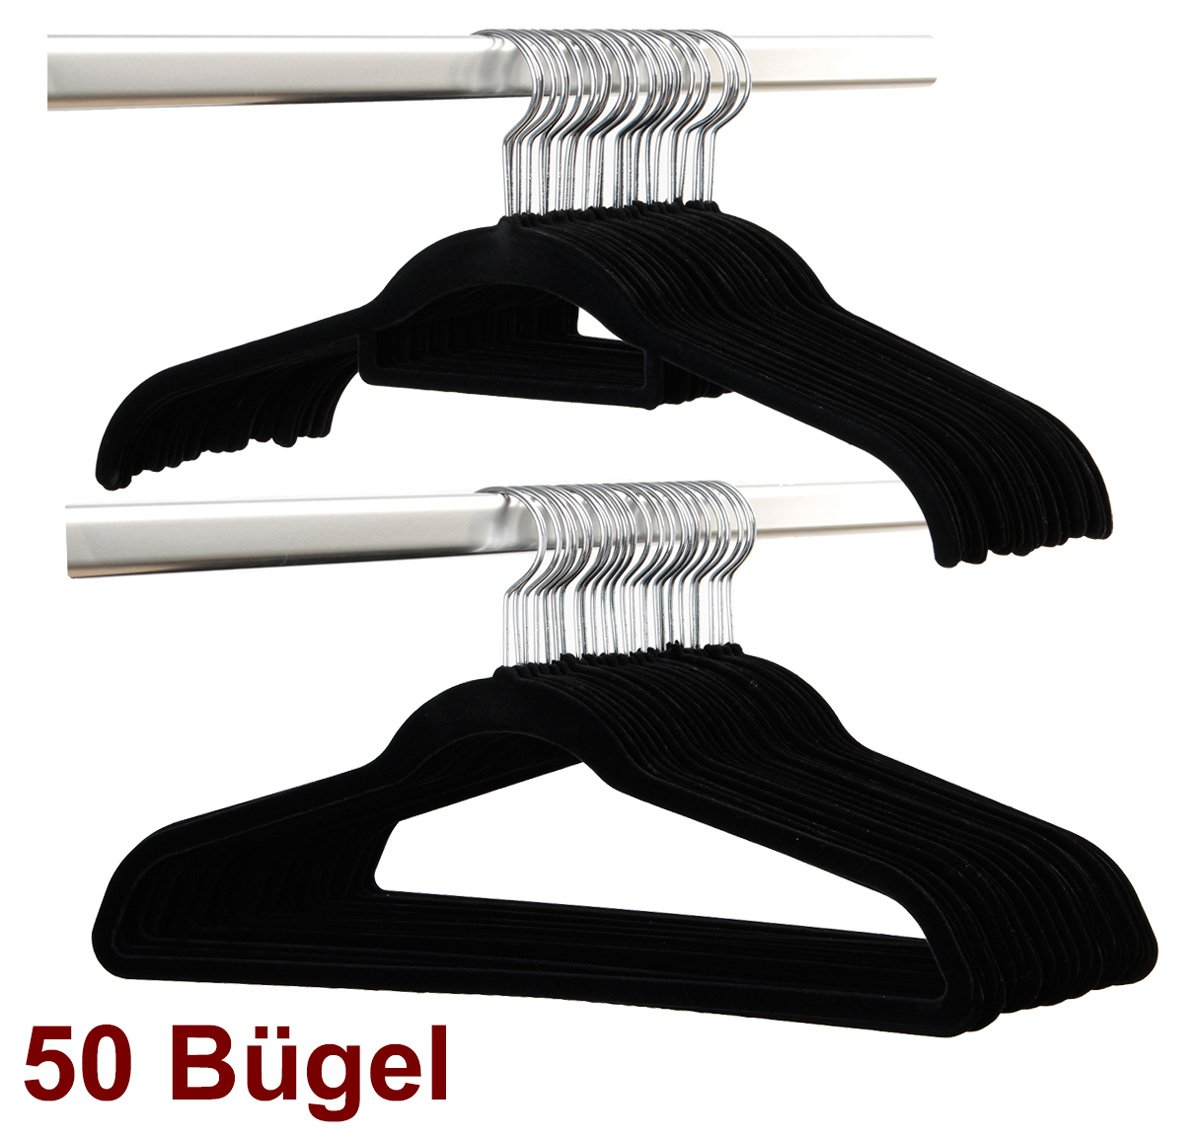 Smart-Hangers -50 Bügel- Schwarz / magic raumspar rutschfeste ...